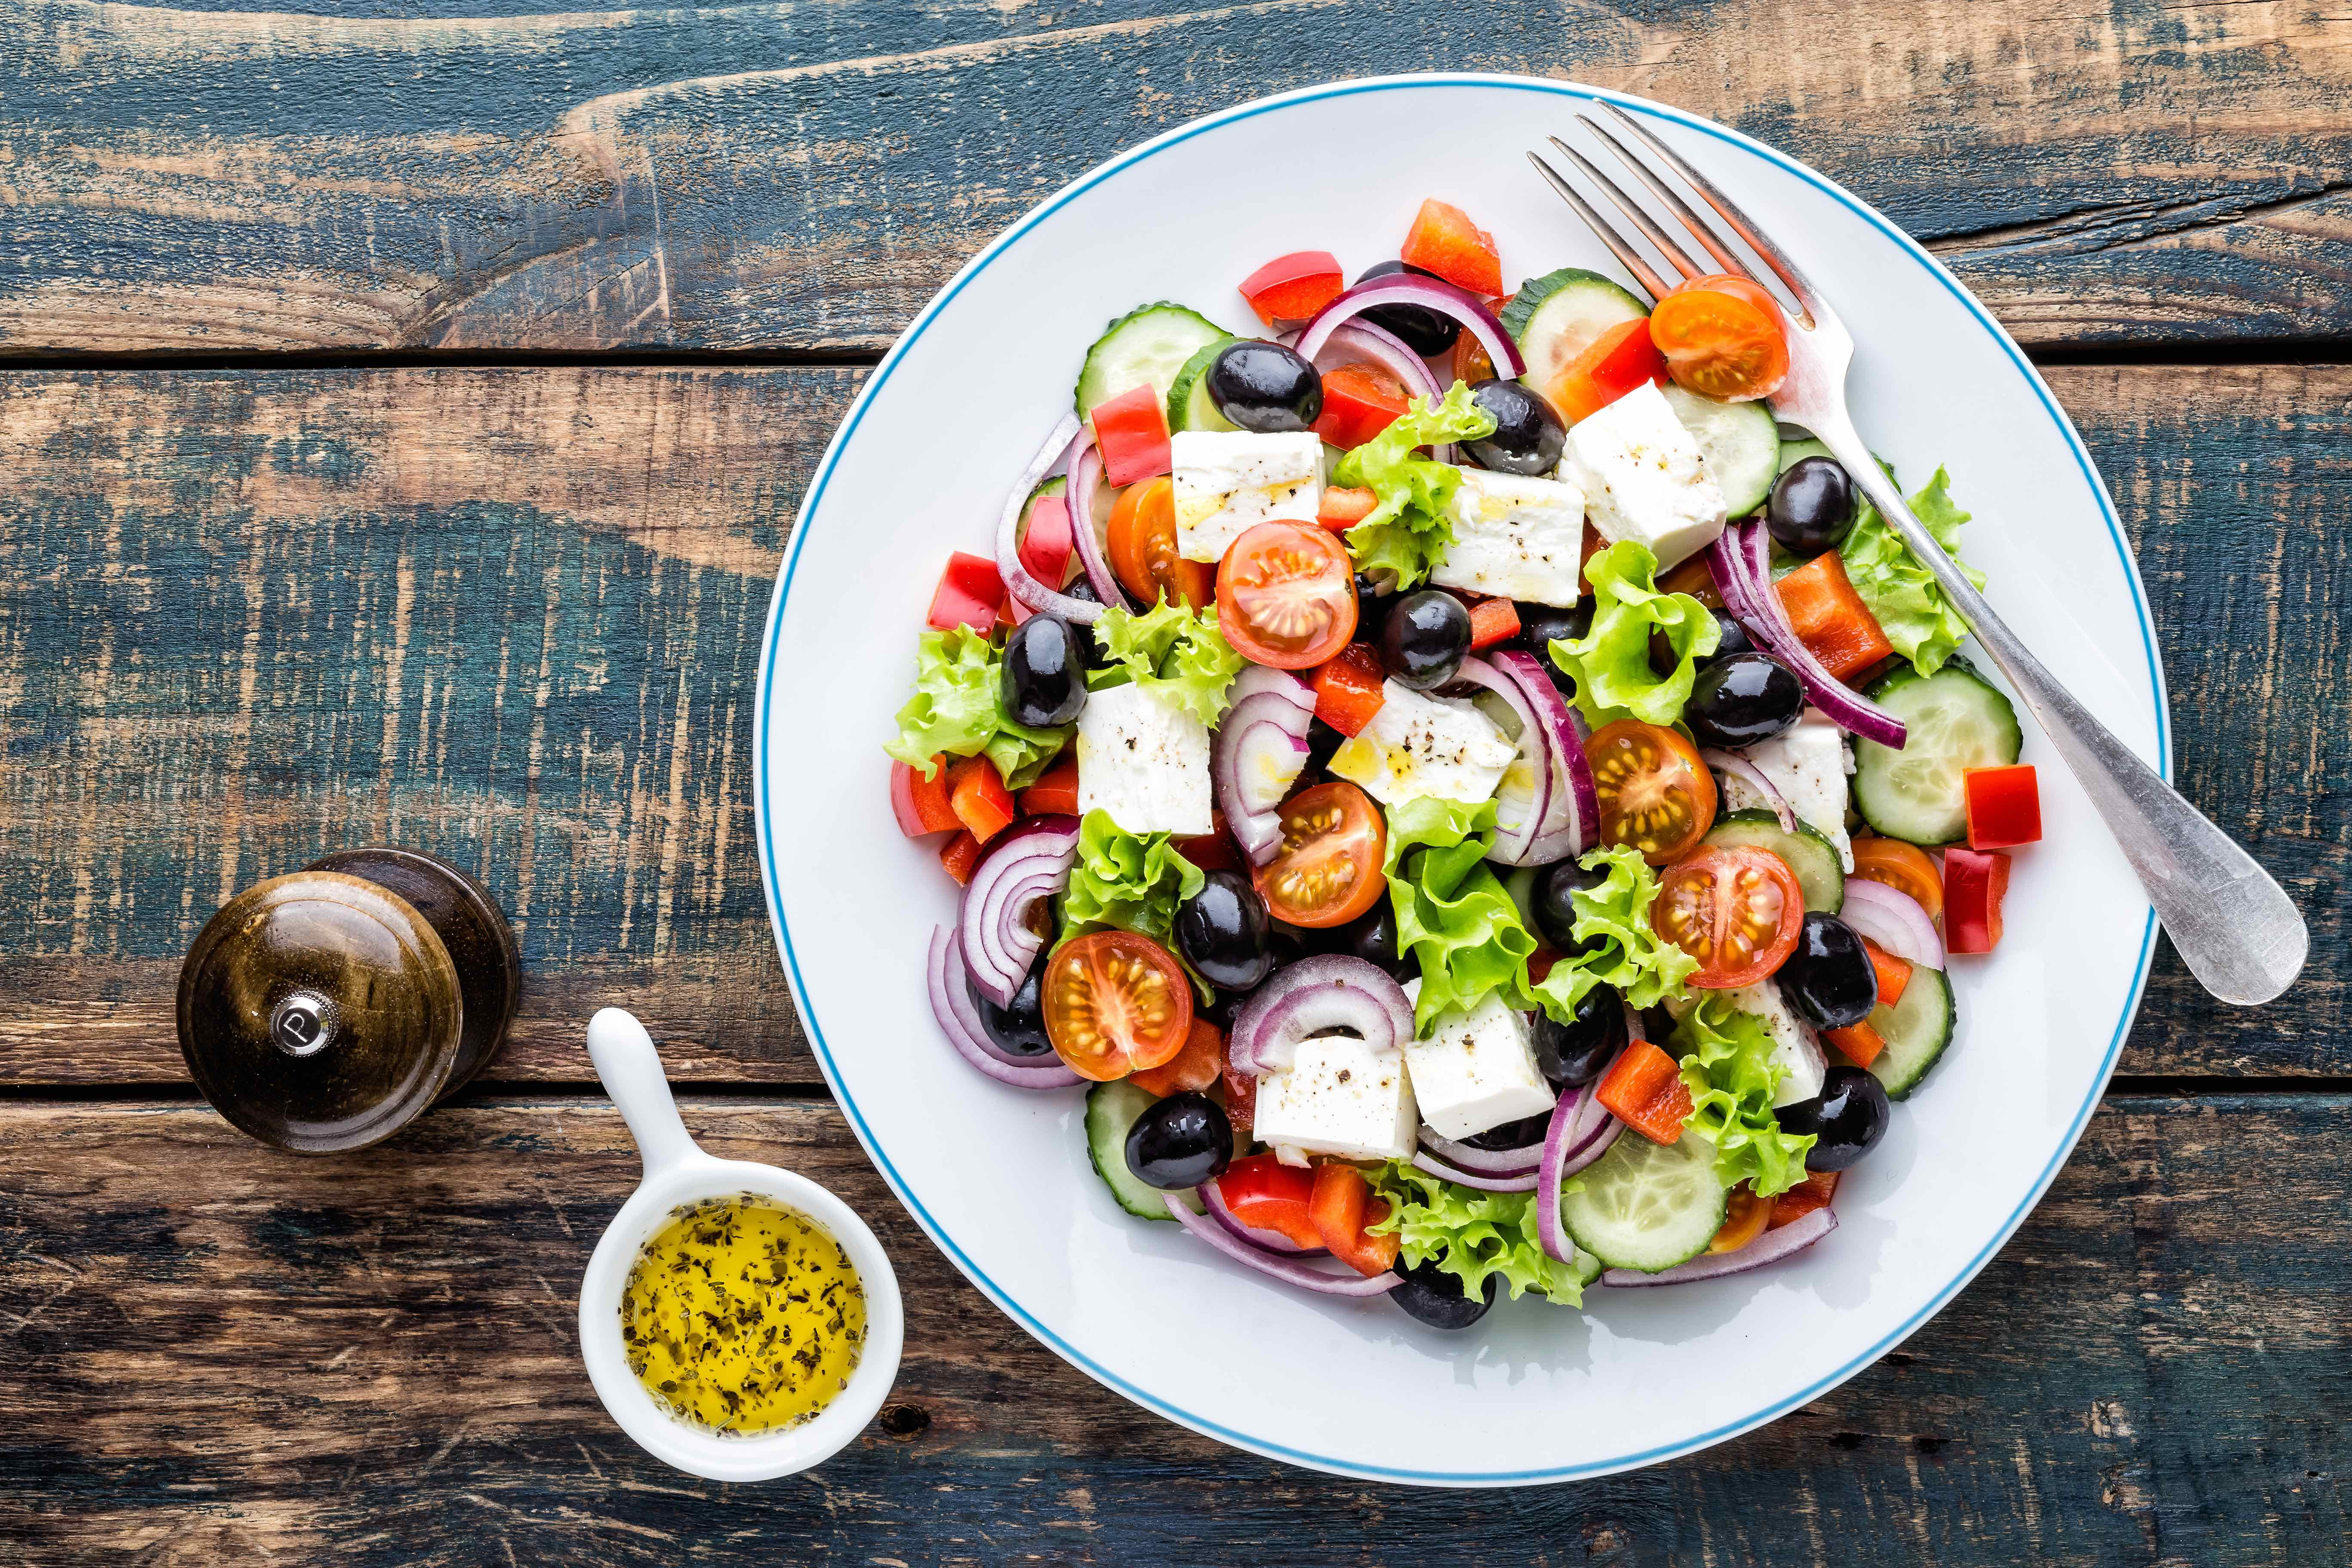 greek salad with pepper shaker and container of spices